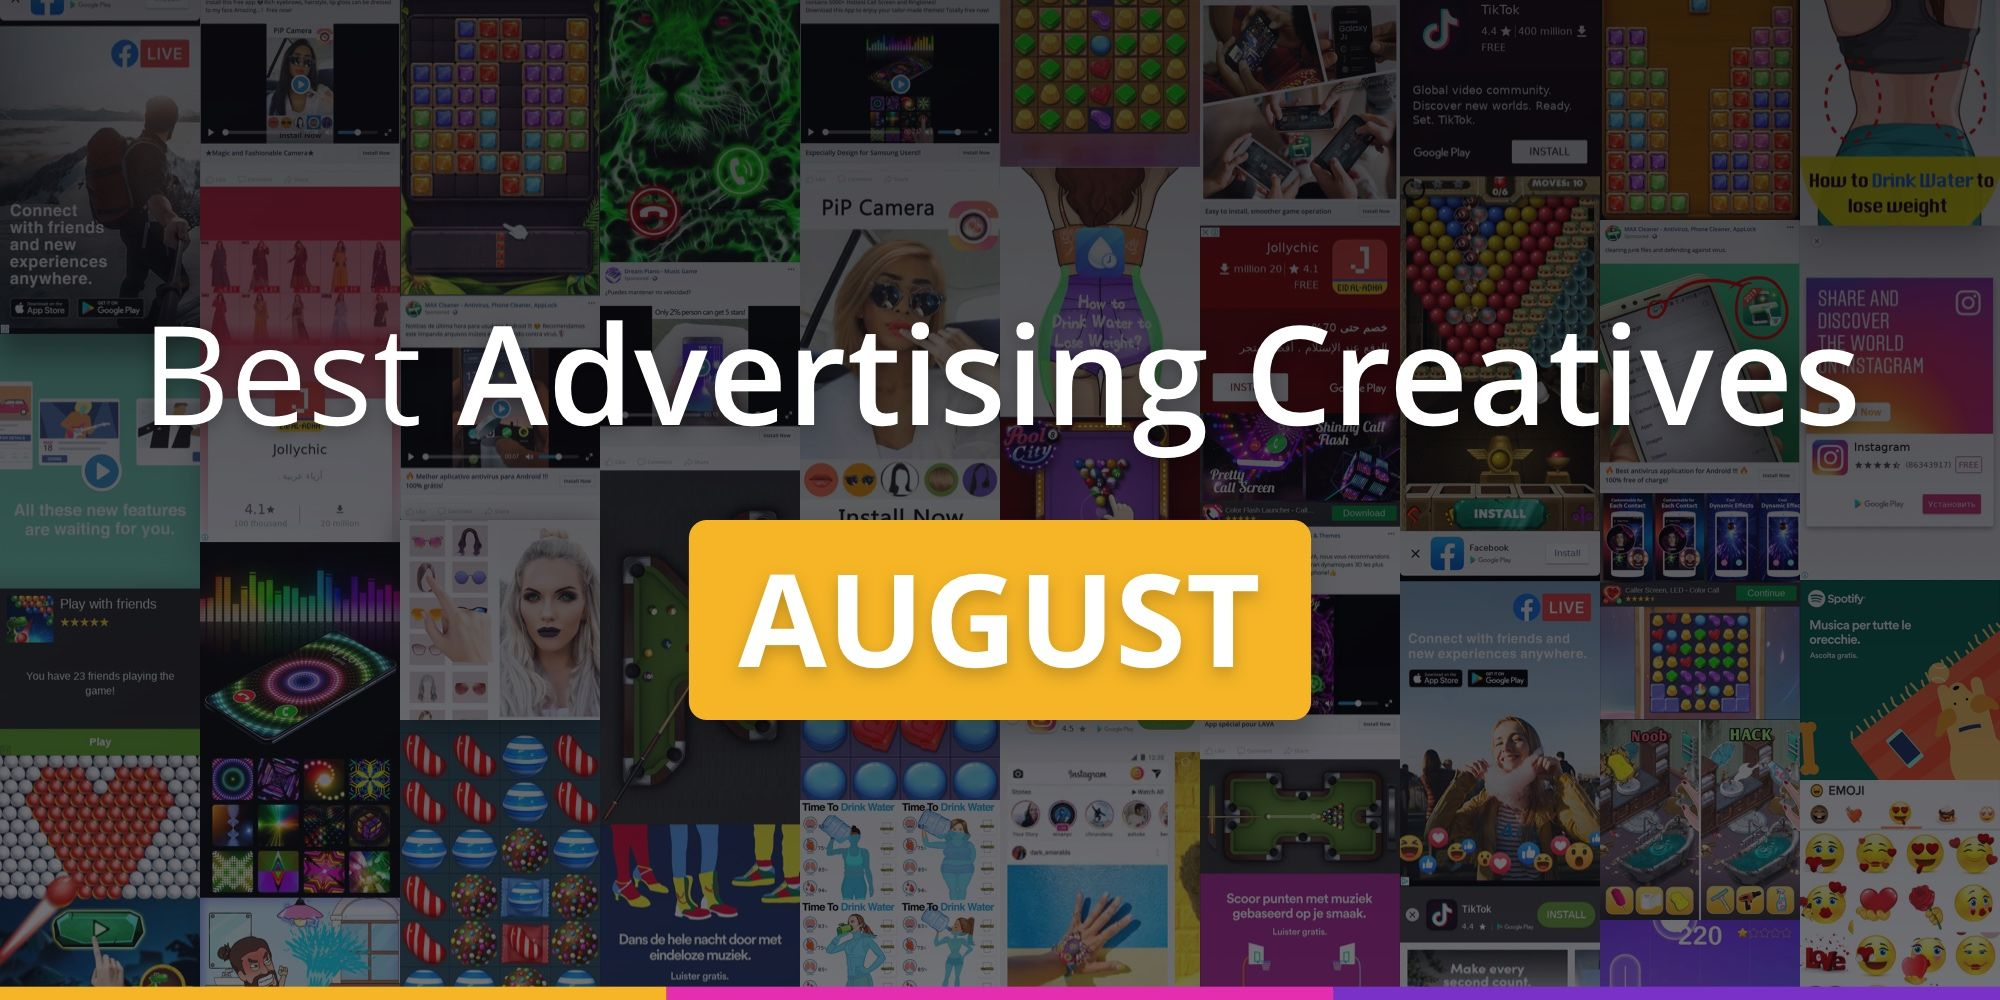 Best advertising creatives of August